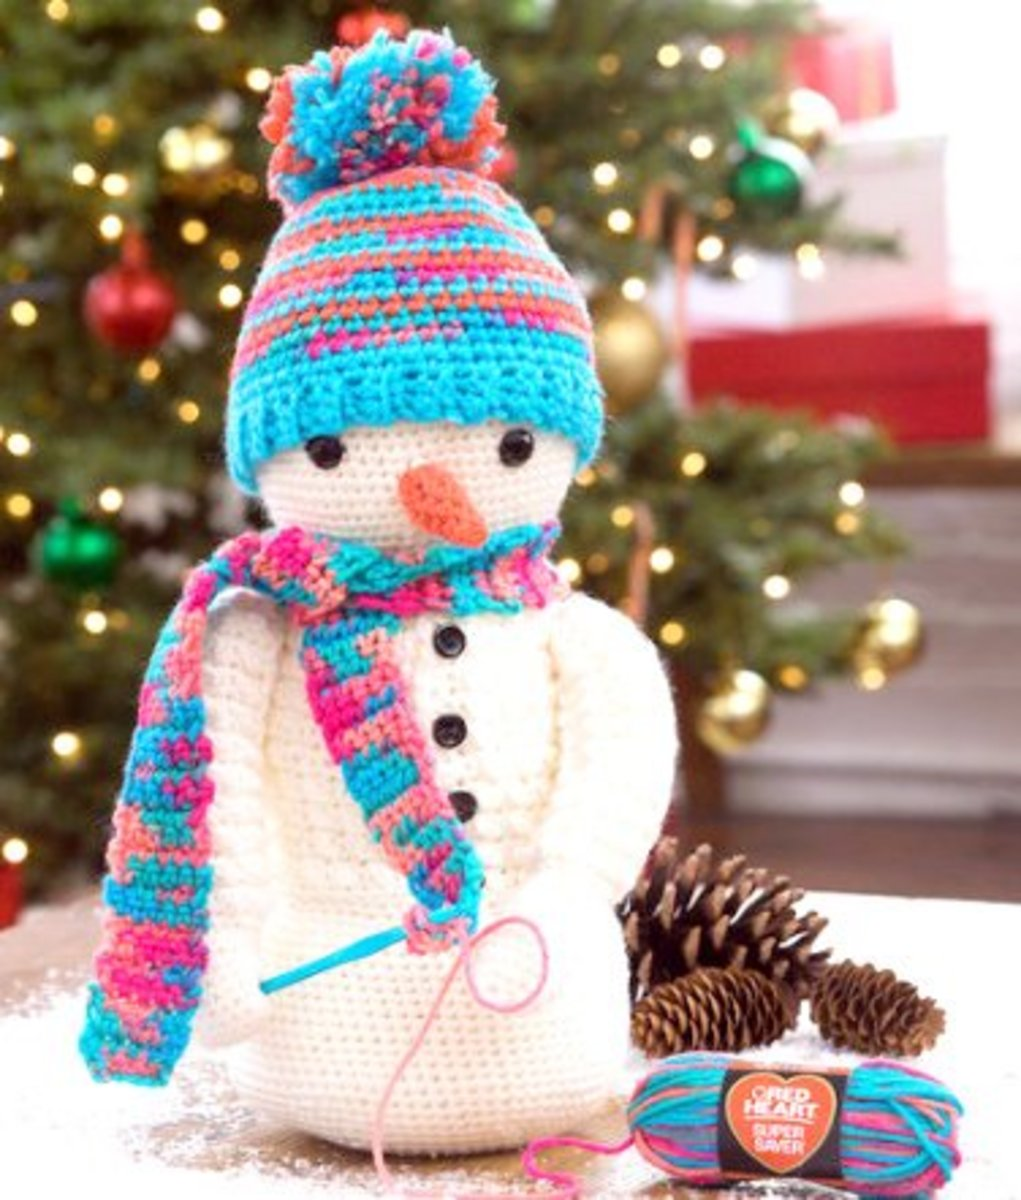 Free crochet pattern for amigurumi snowman.